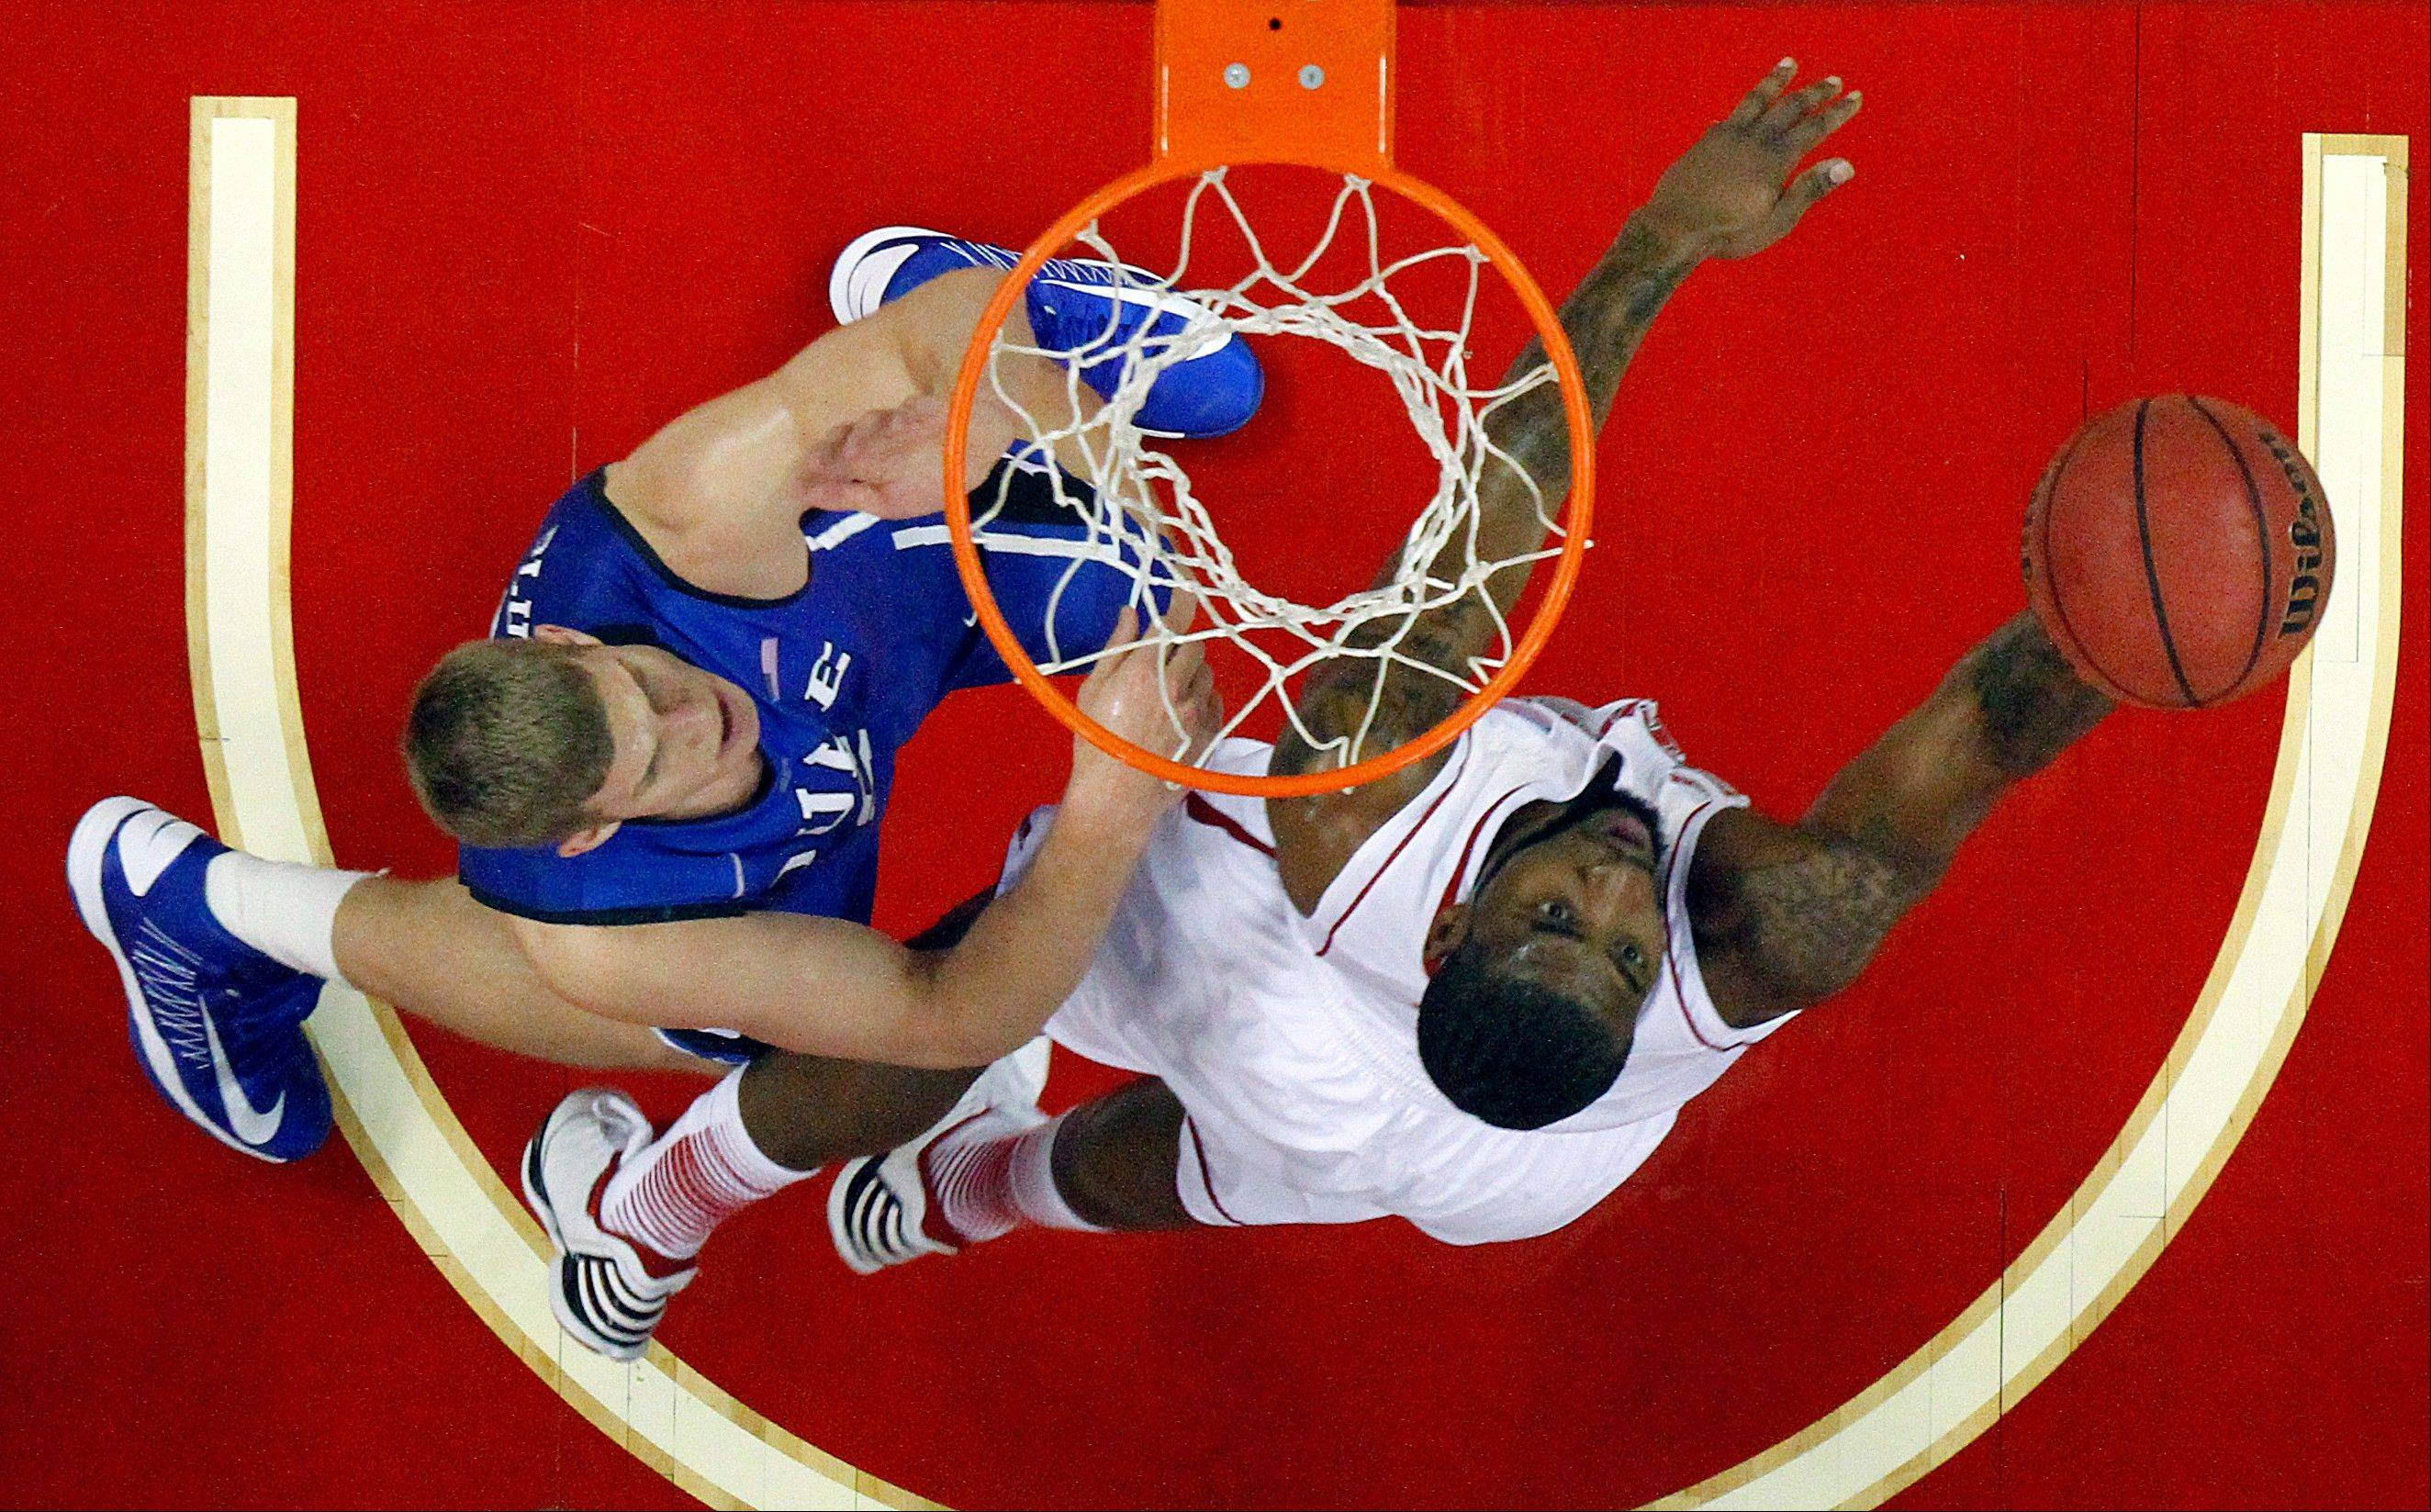 CORRECTS FIRST NAME TO MASON, NOT MARSHALL - North Carolina State's Richard Howell (1) shoots the ball over Duke's Mason Plumlee (5) during the first half of an NCAA college basketball game in Raleigh, N.C., Saturday, Jan. 12, 2013. Howell scored 16 points in State's 84-76 win over No. 1 Duke.